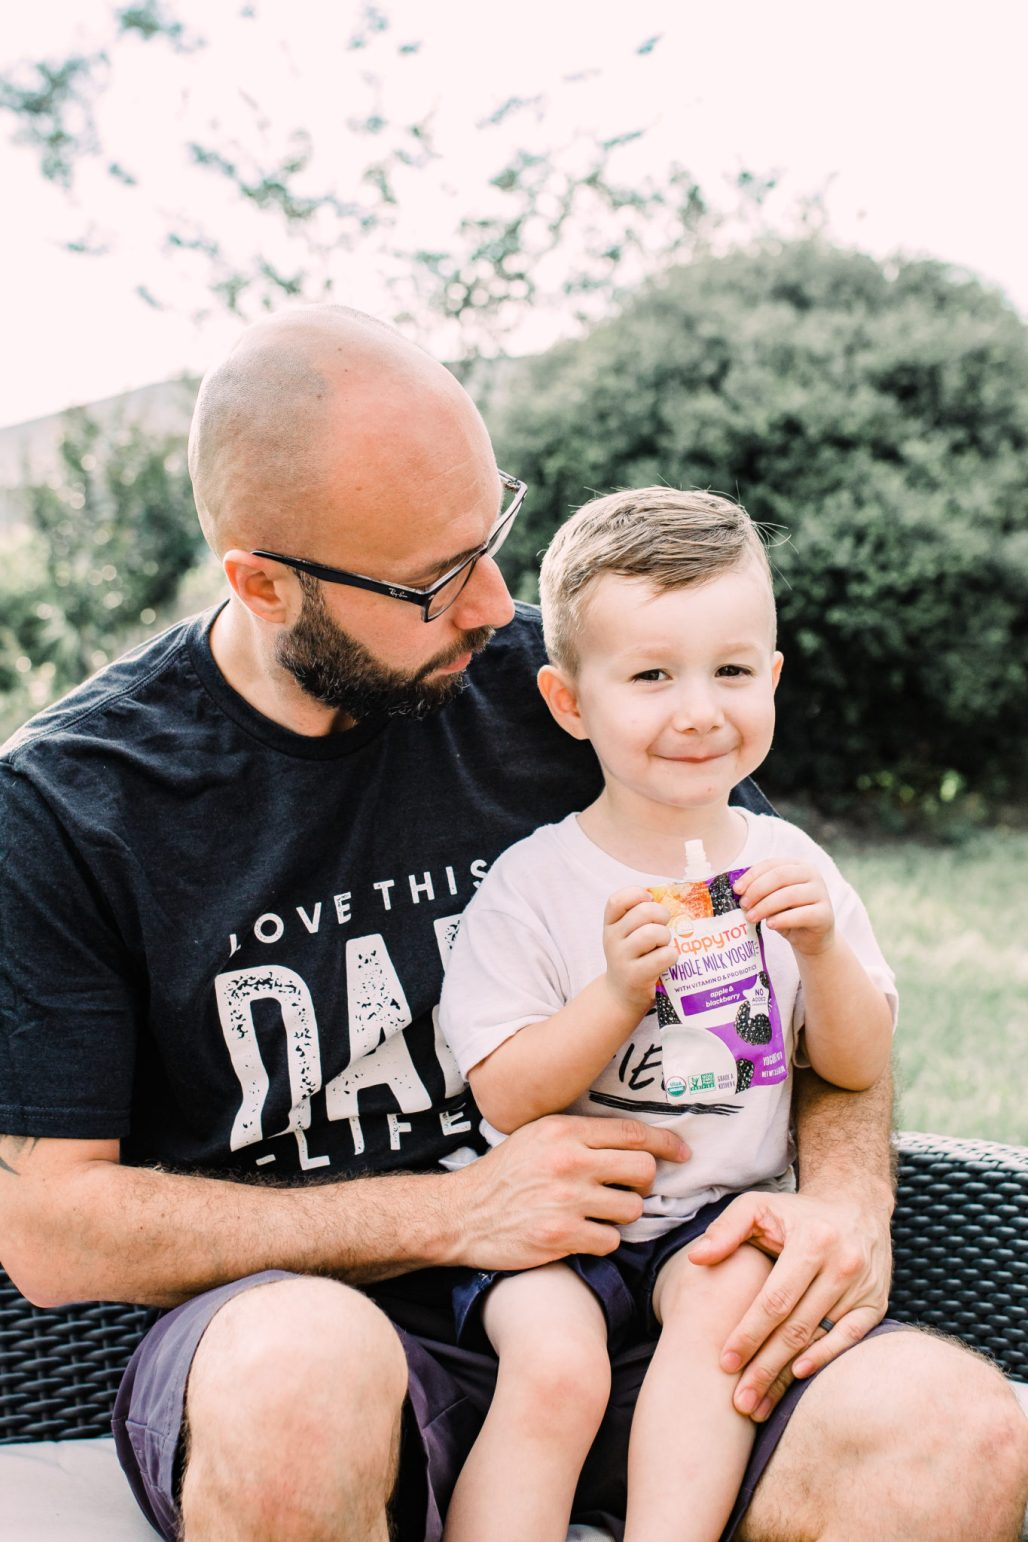 #ad #ThisIsHappy #TargetBaby, Refreshing Summer Treats for Toddlers, healthy snacks for toddlers, organic yogurt pouches, fun ways to enjoy yogurt treats